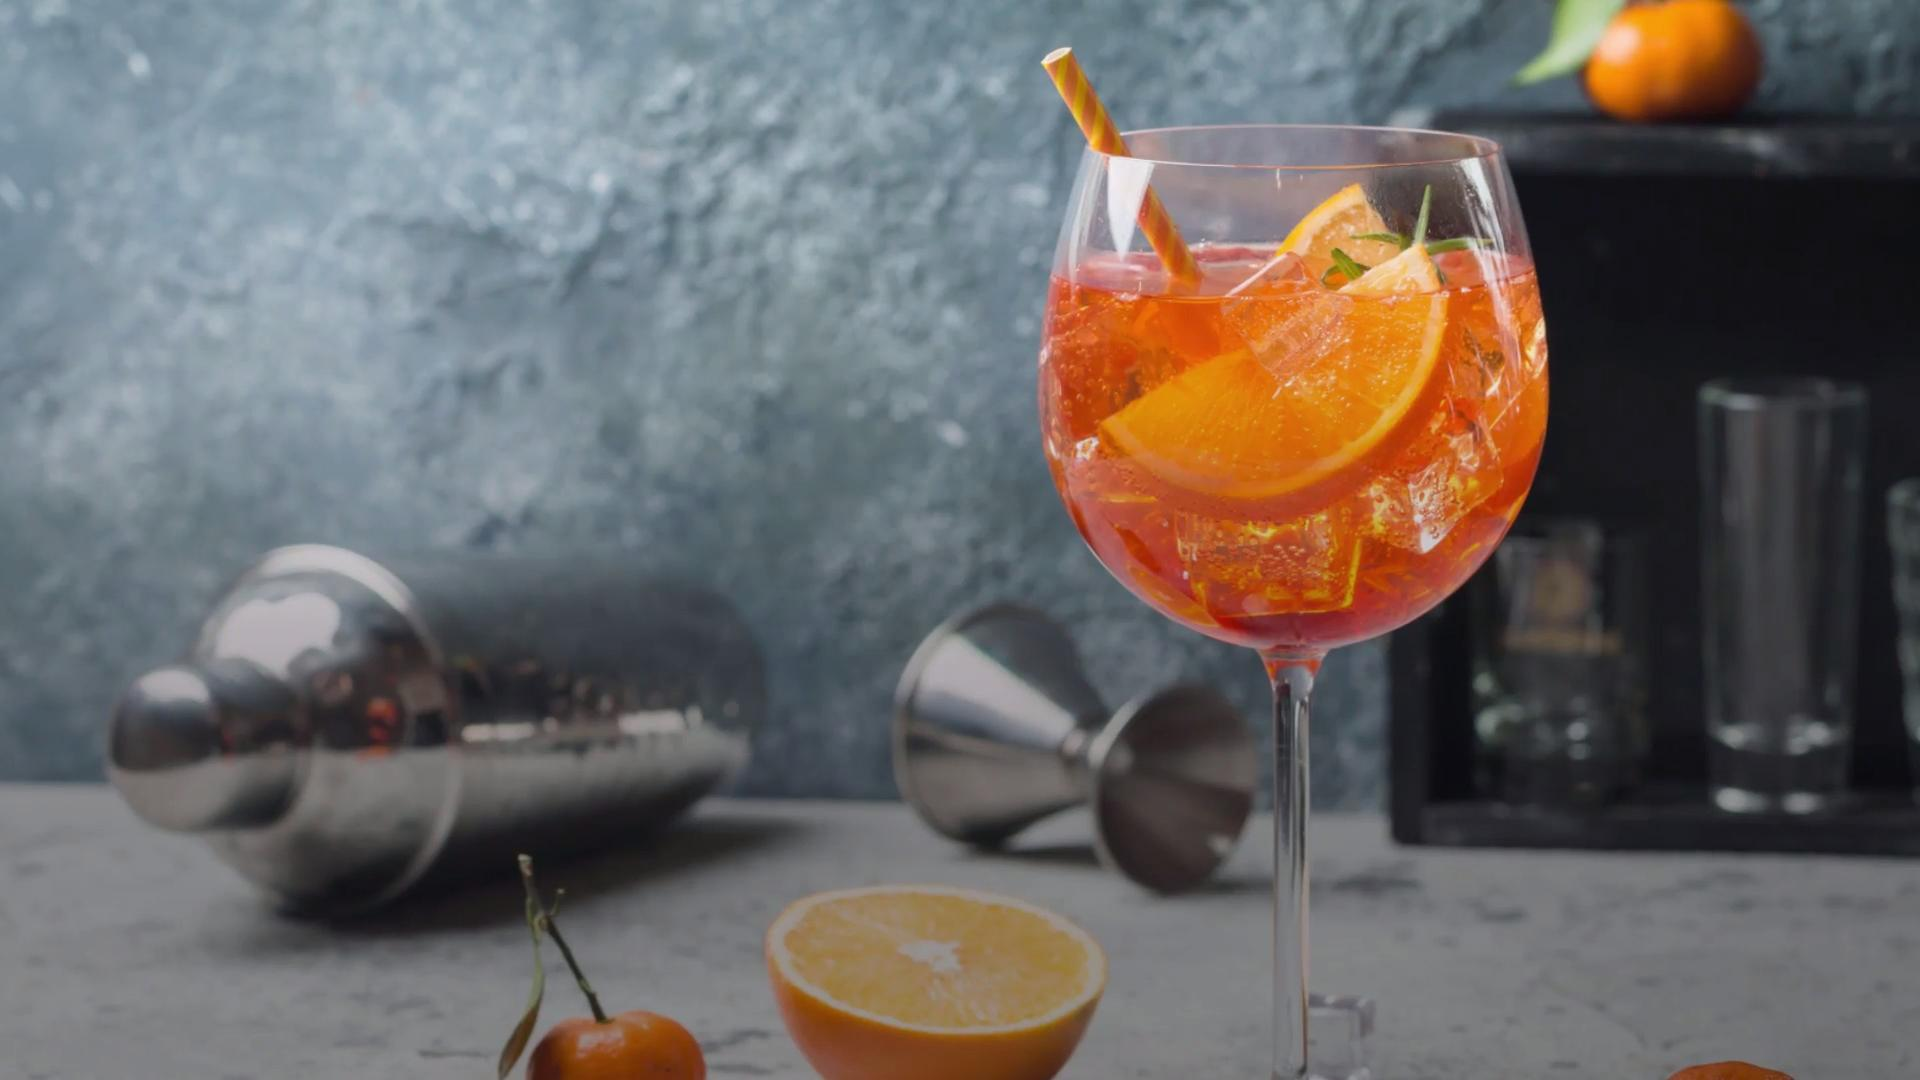 M&S Now Sells 'Aperol Spritz' In A Can, So Summer Is Officially Here